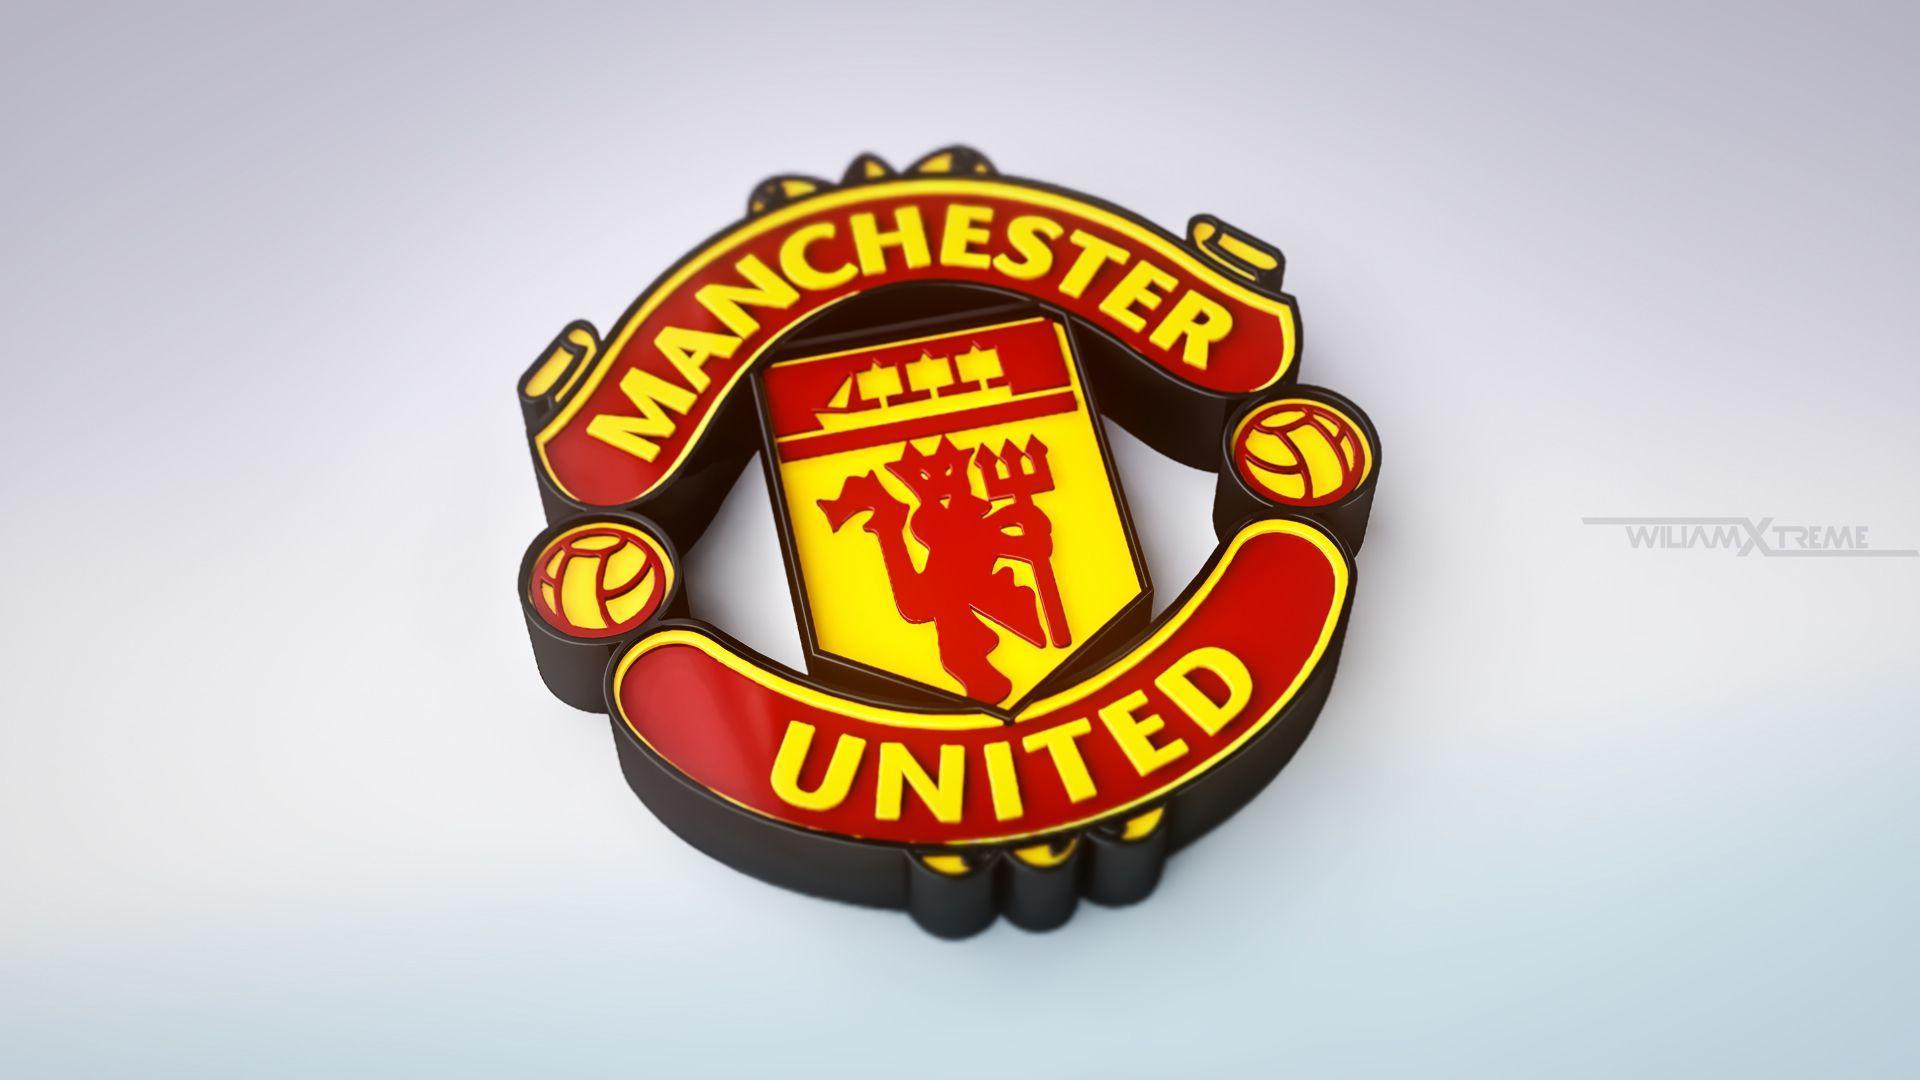 Manchester United Wallpapers 3D 2017 1920x1080